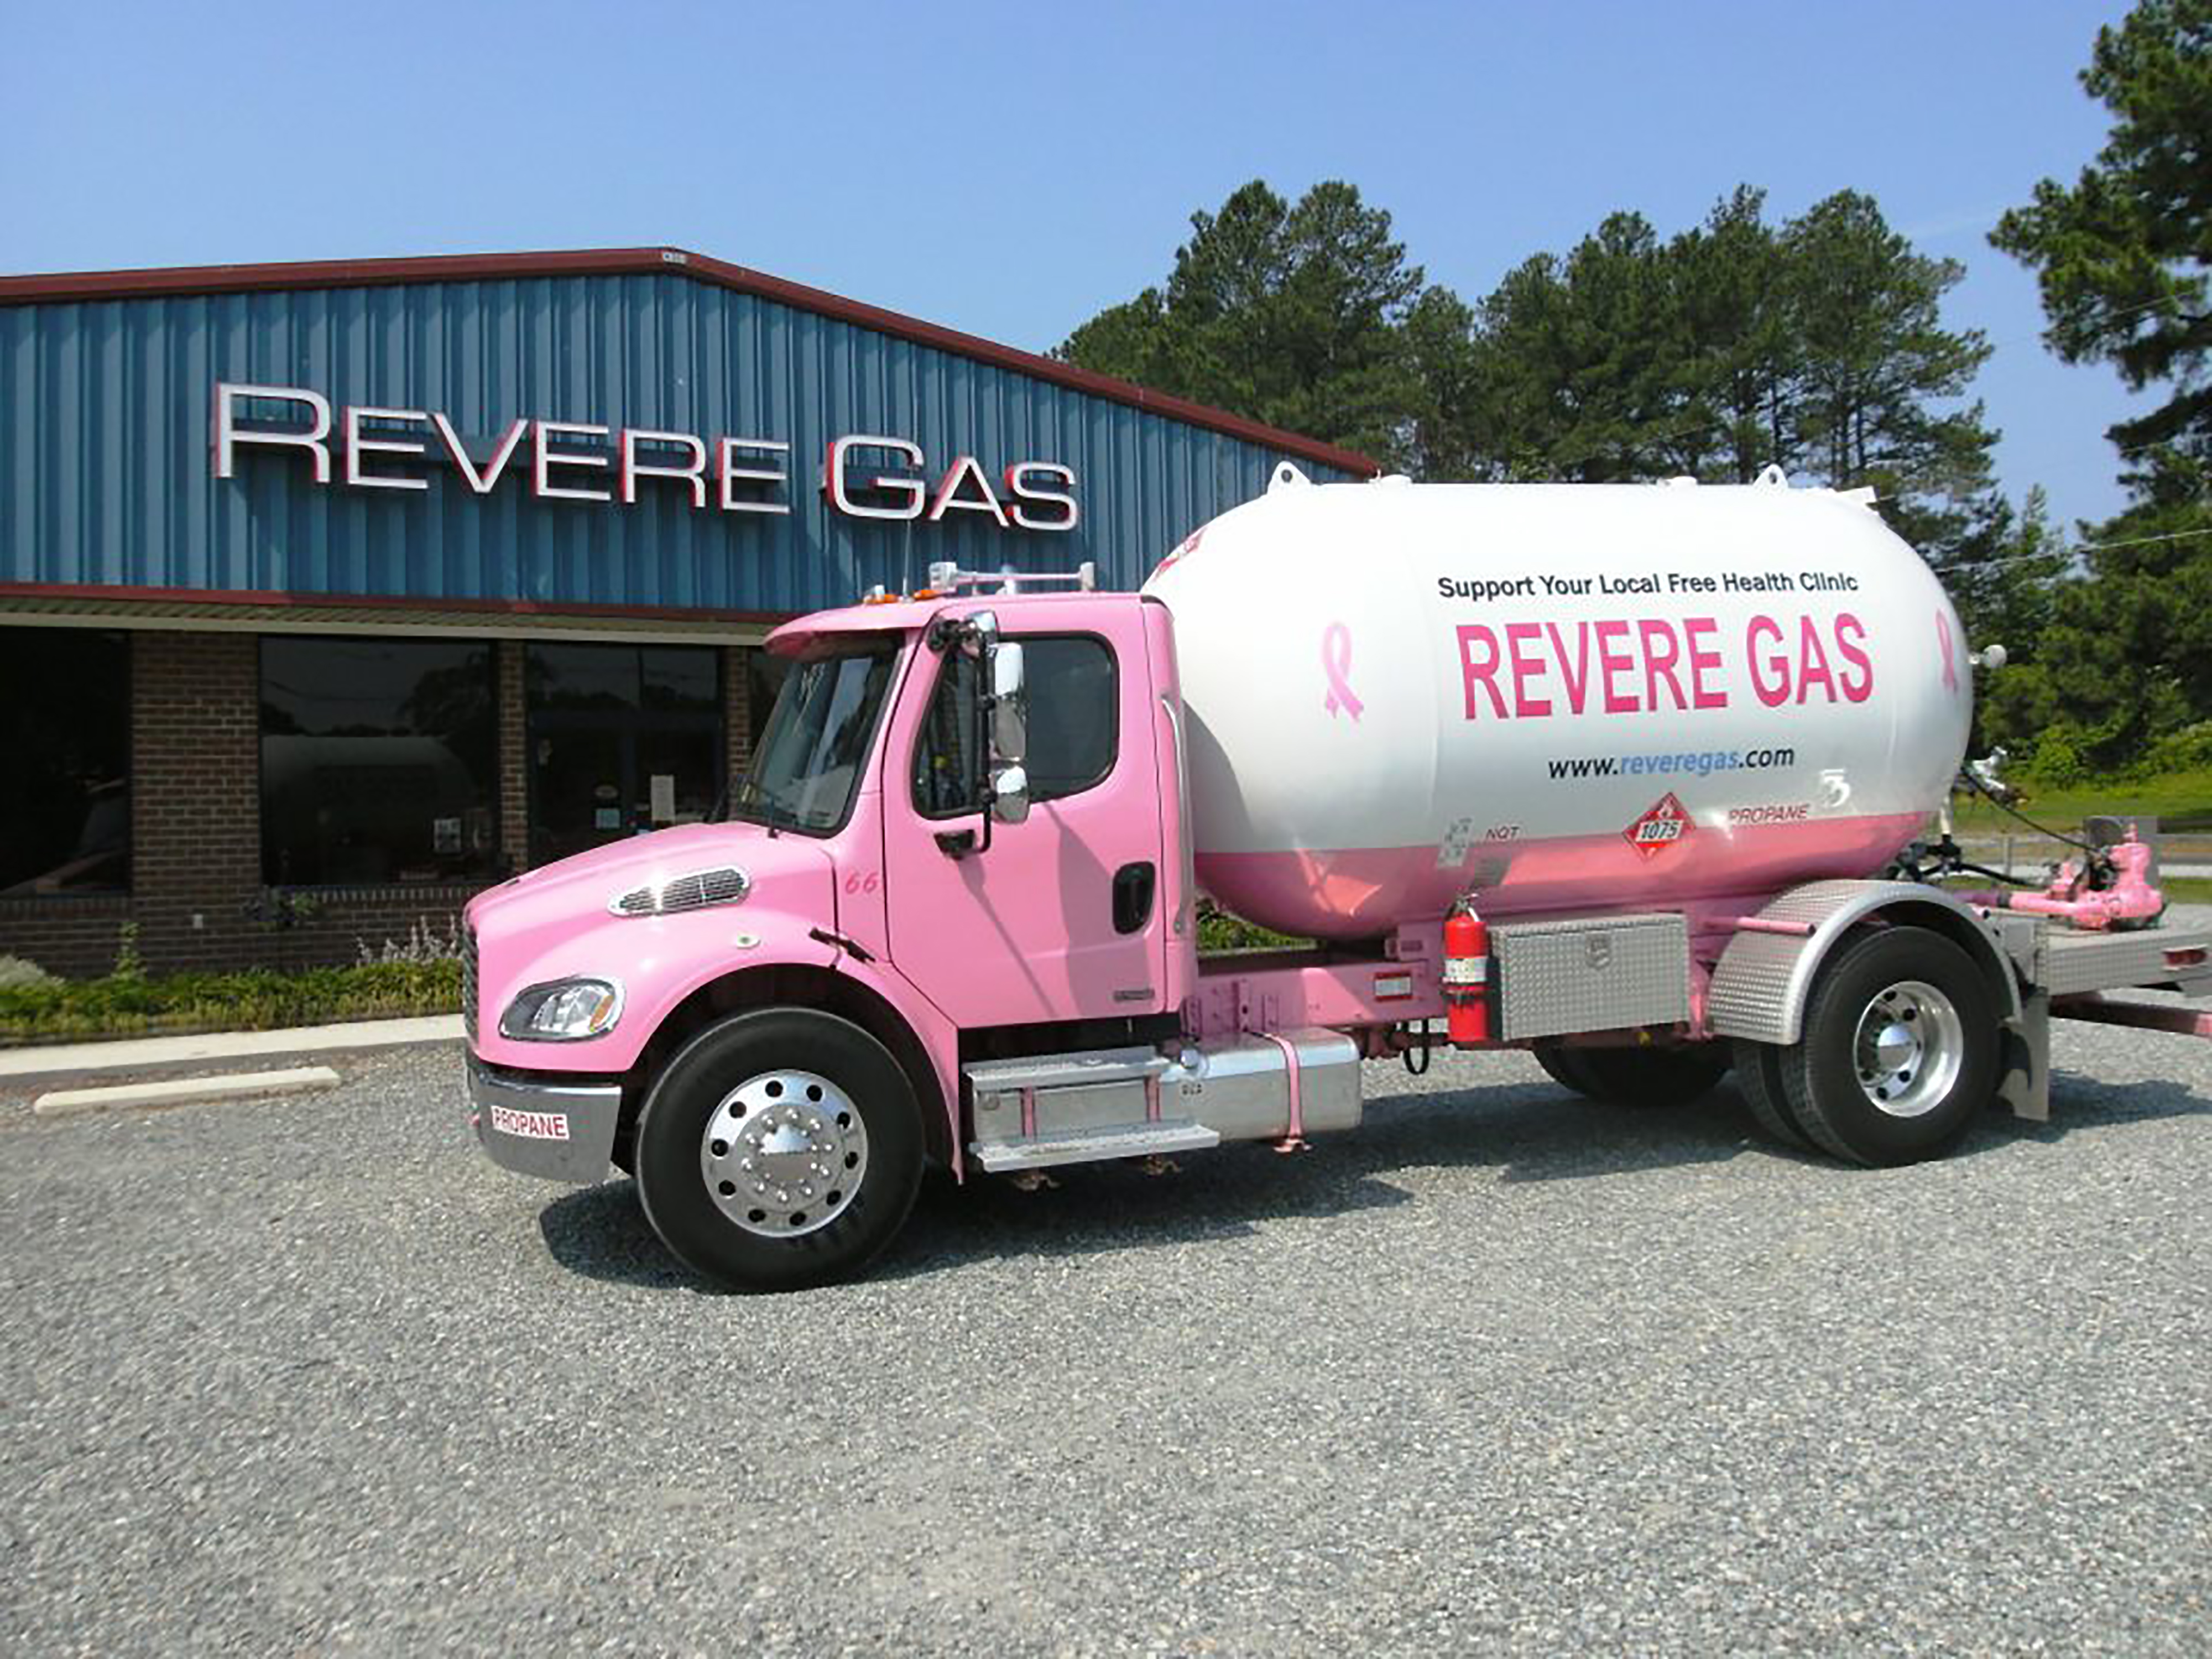 Revere Gas Breast Cancer Support